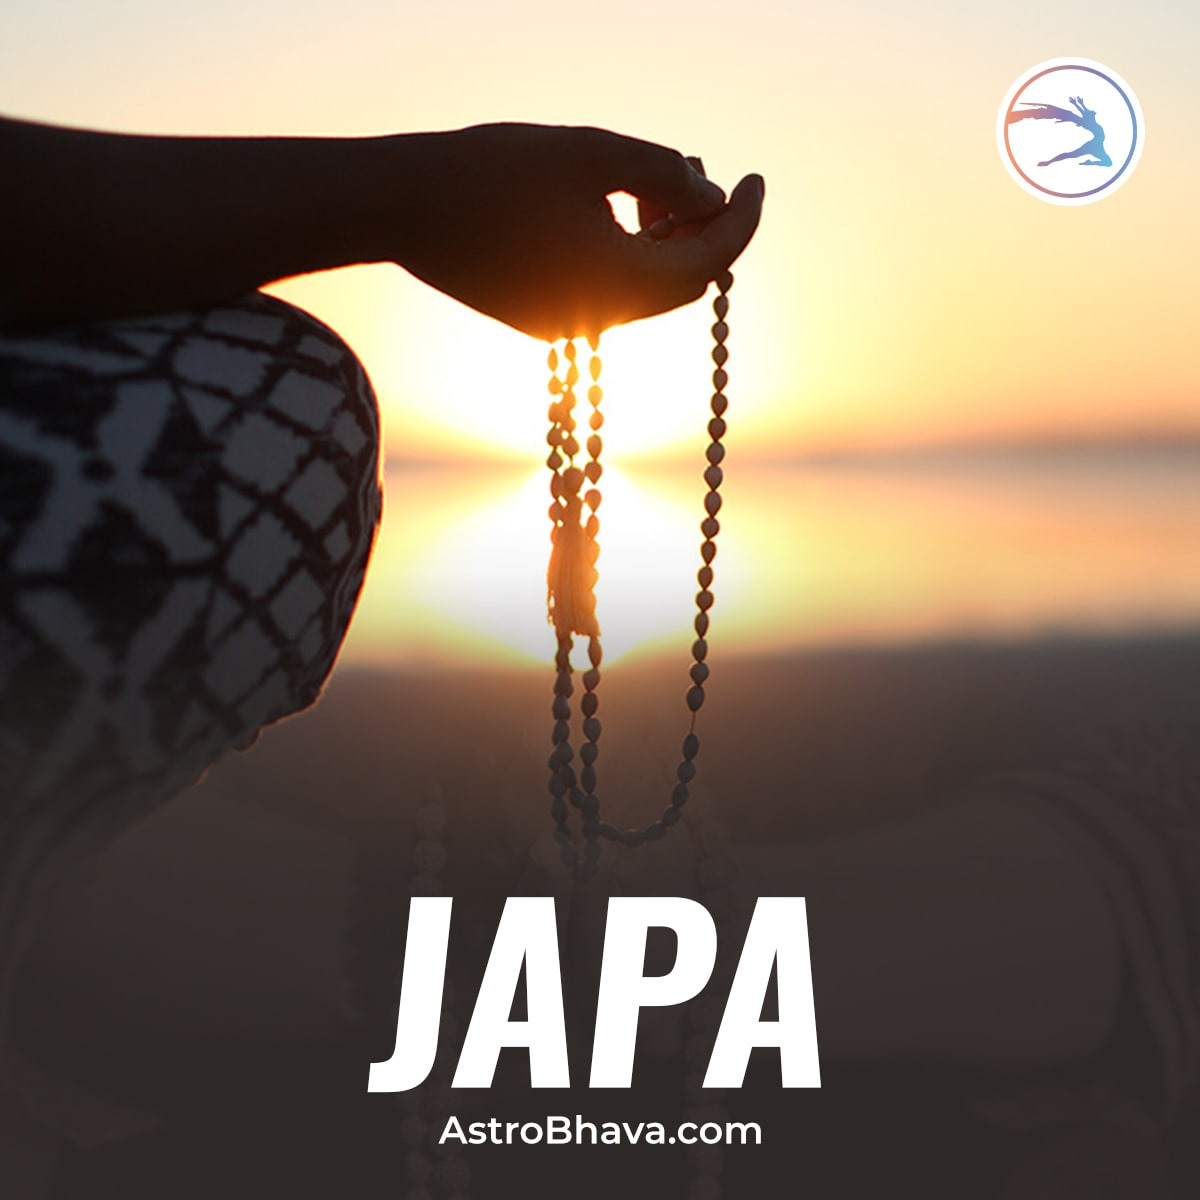 Online Japa Booking Services from Astrobhava Leads to the Path of Divinity